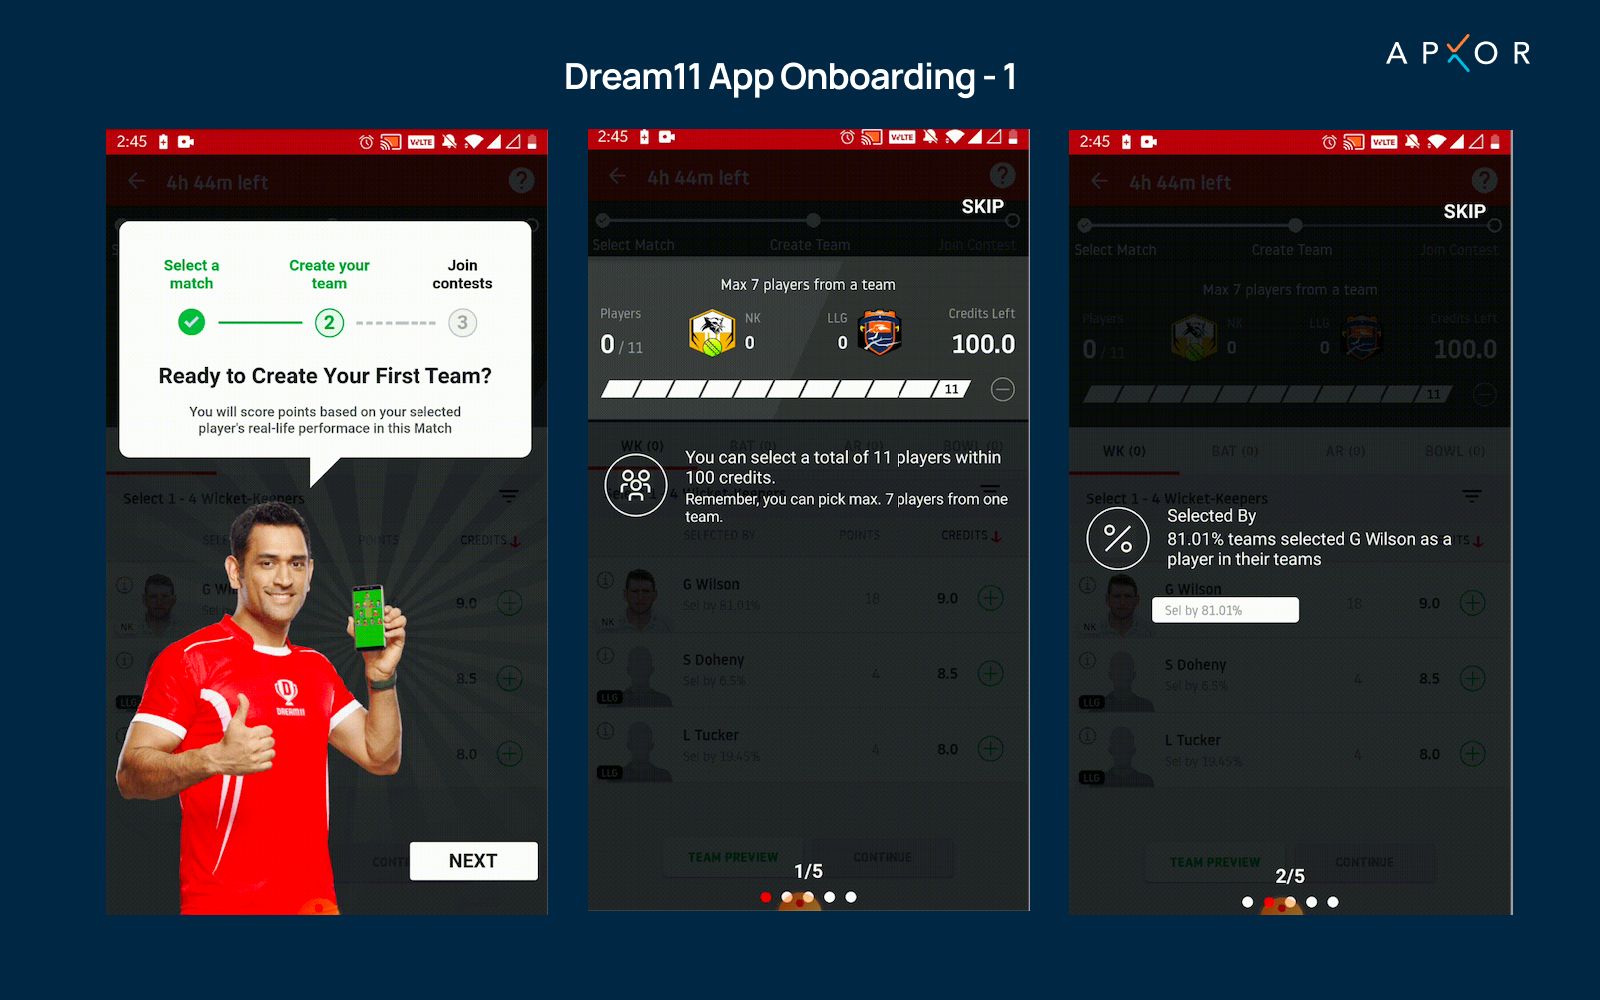 Dream11 App Onboarding Images Apxor